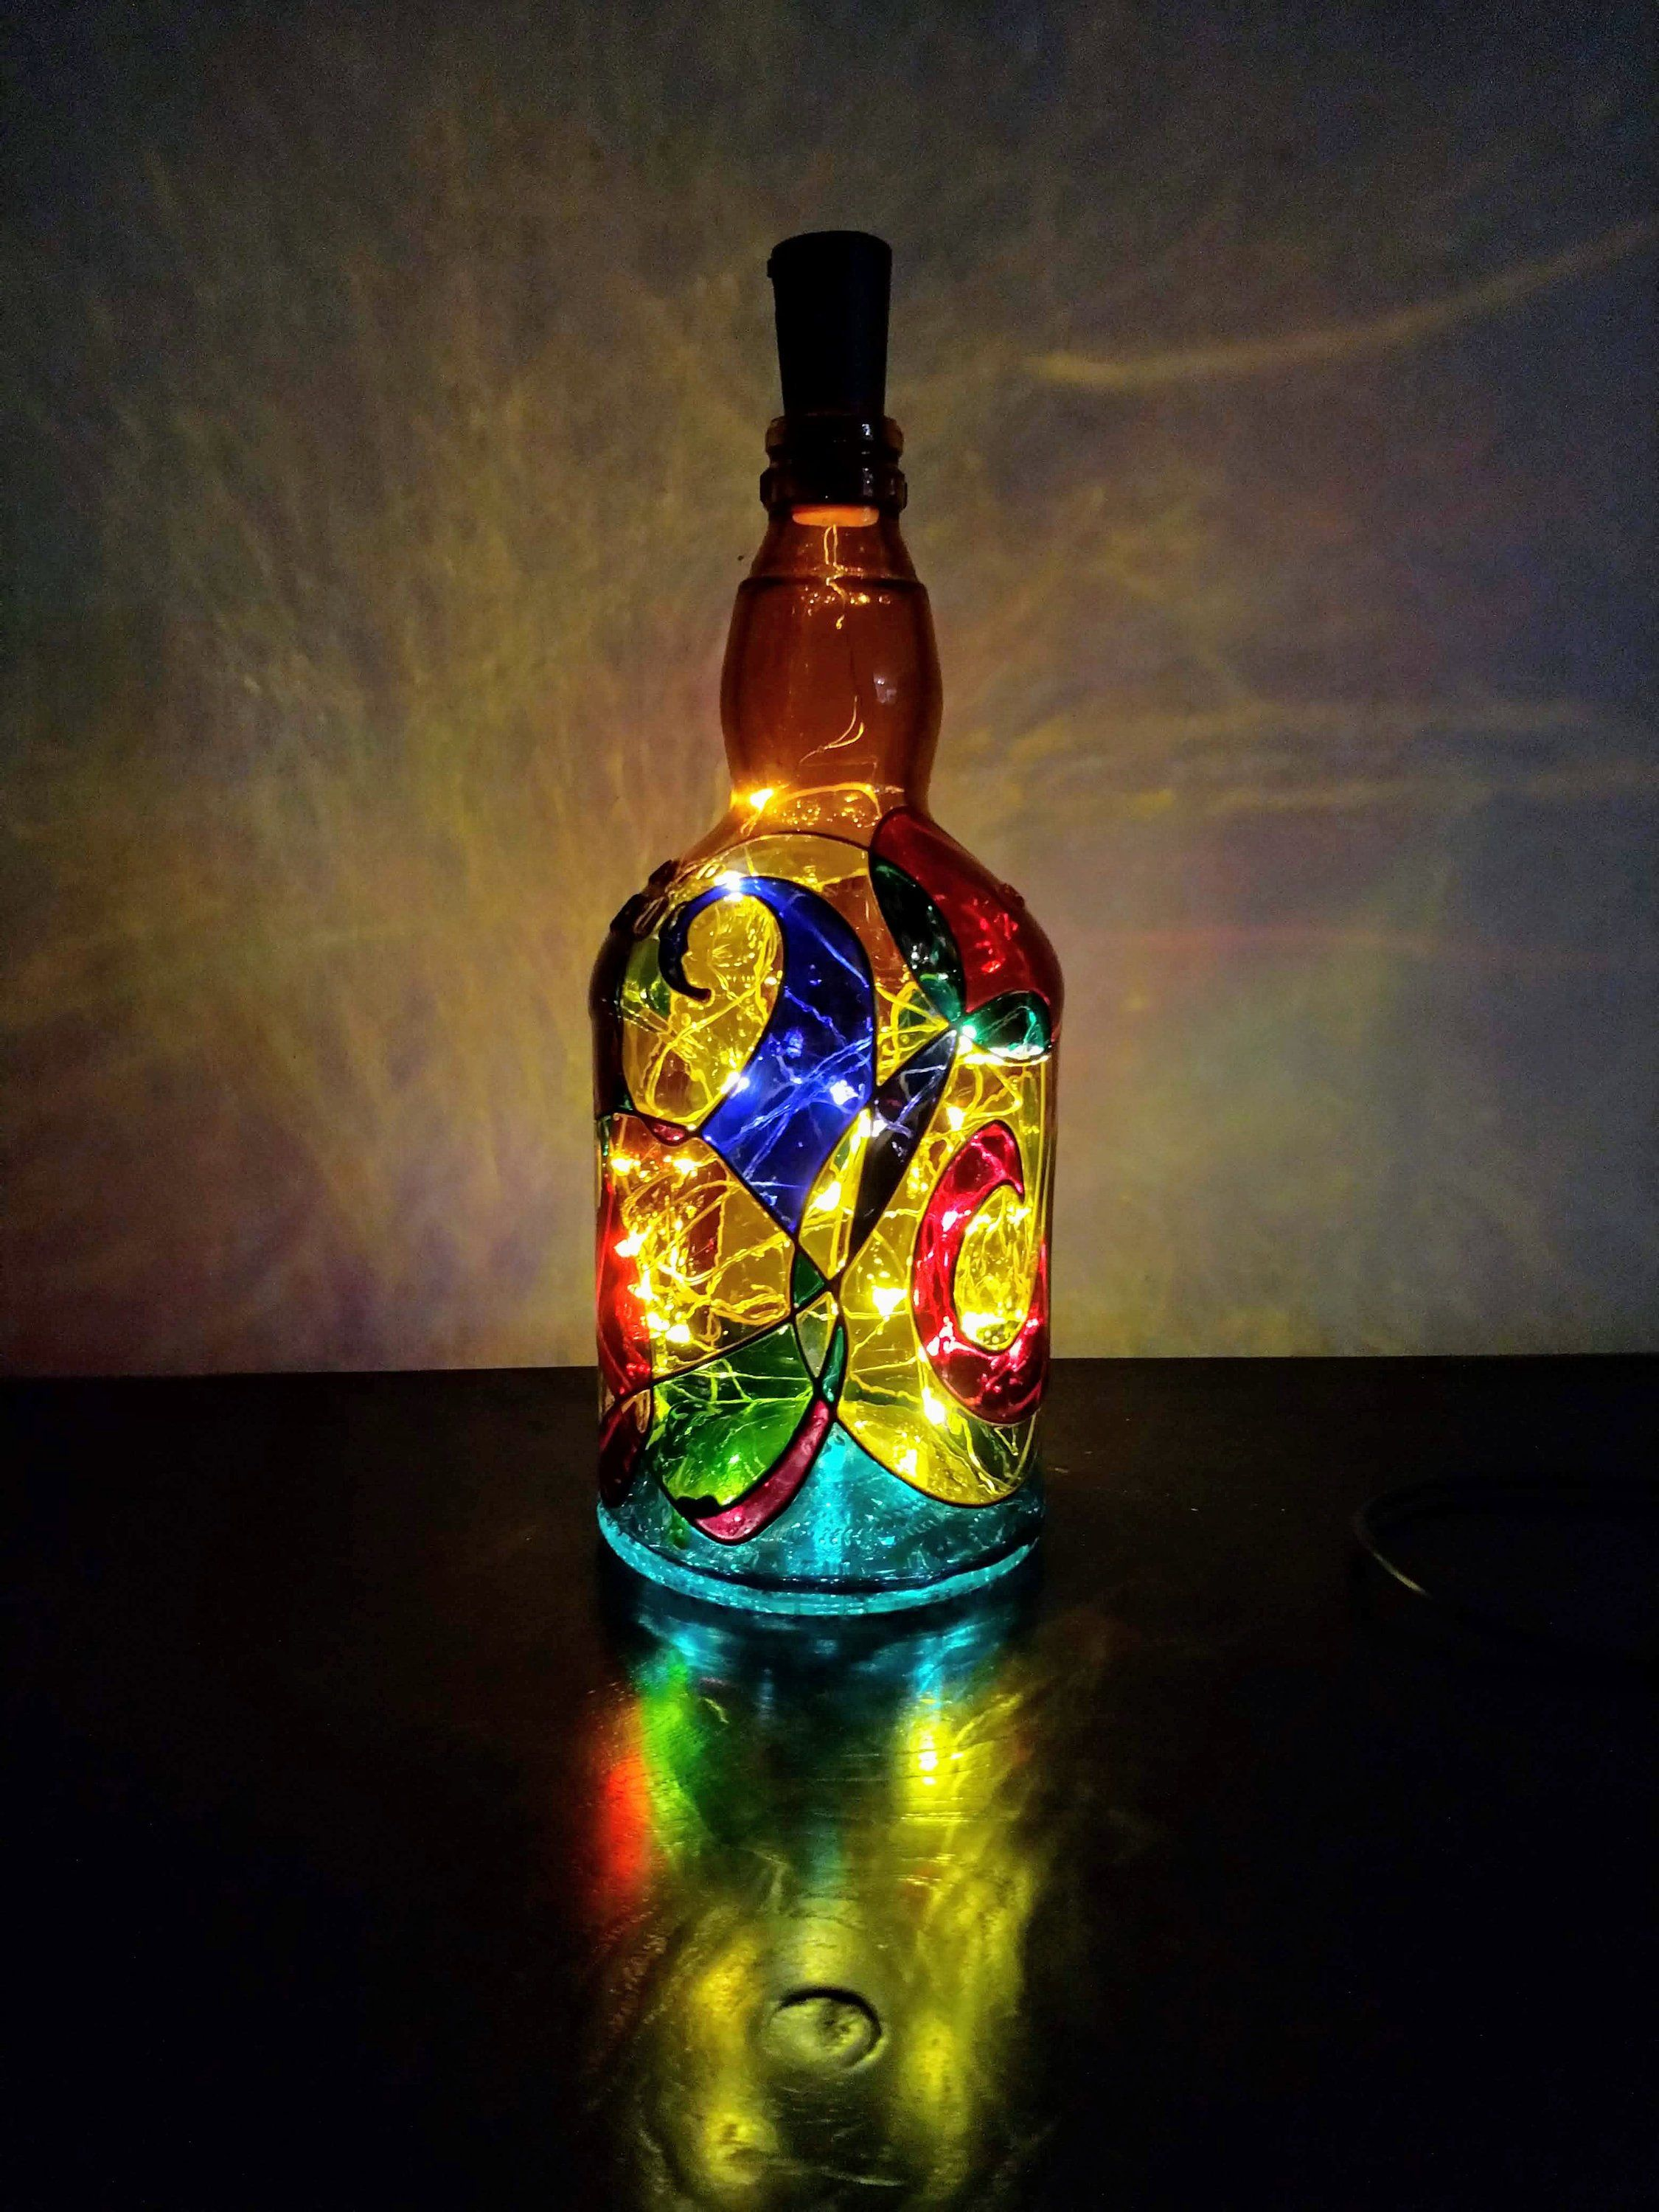 Excited to share the latest addition to my etsy shop fairy lights unique night